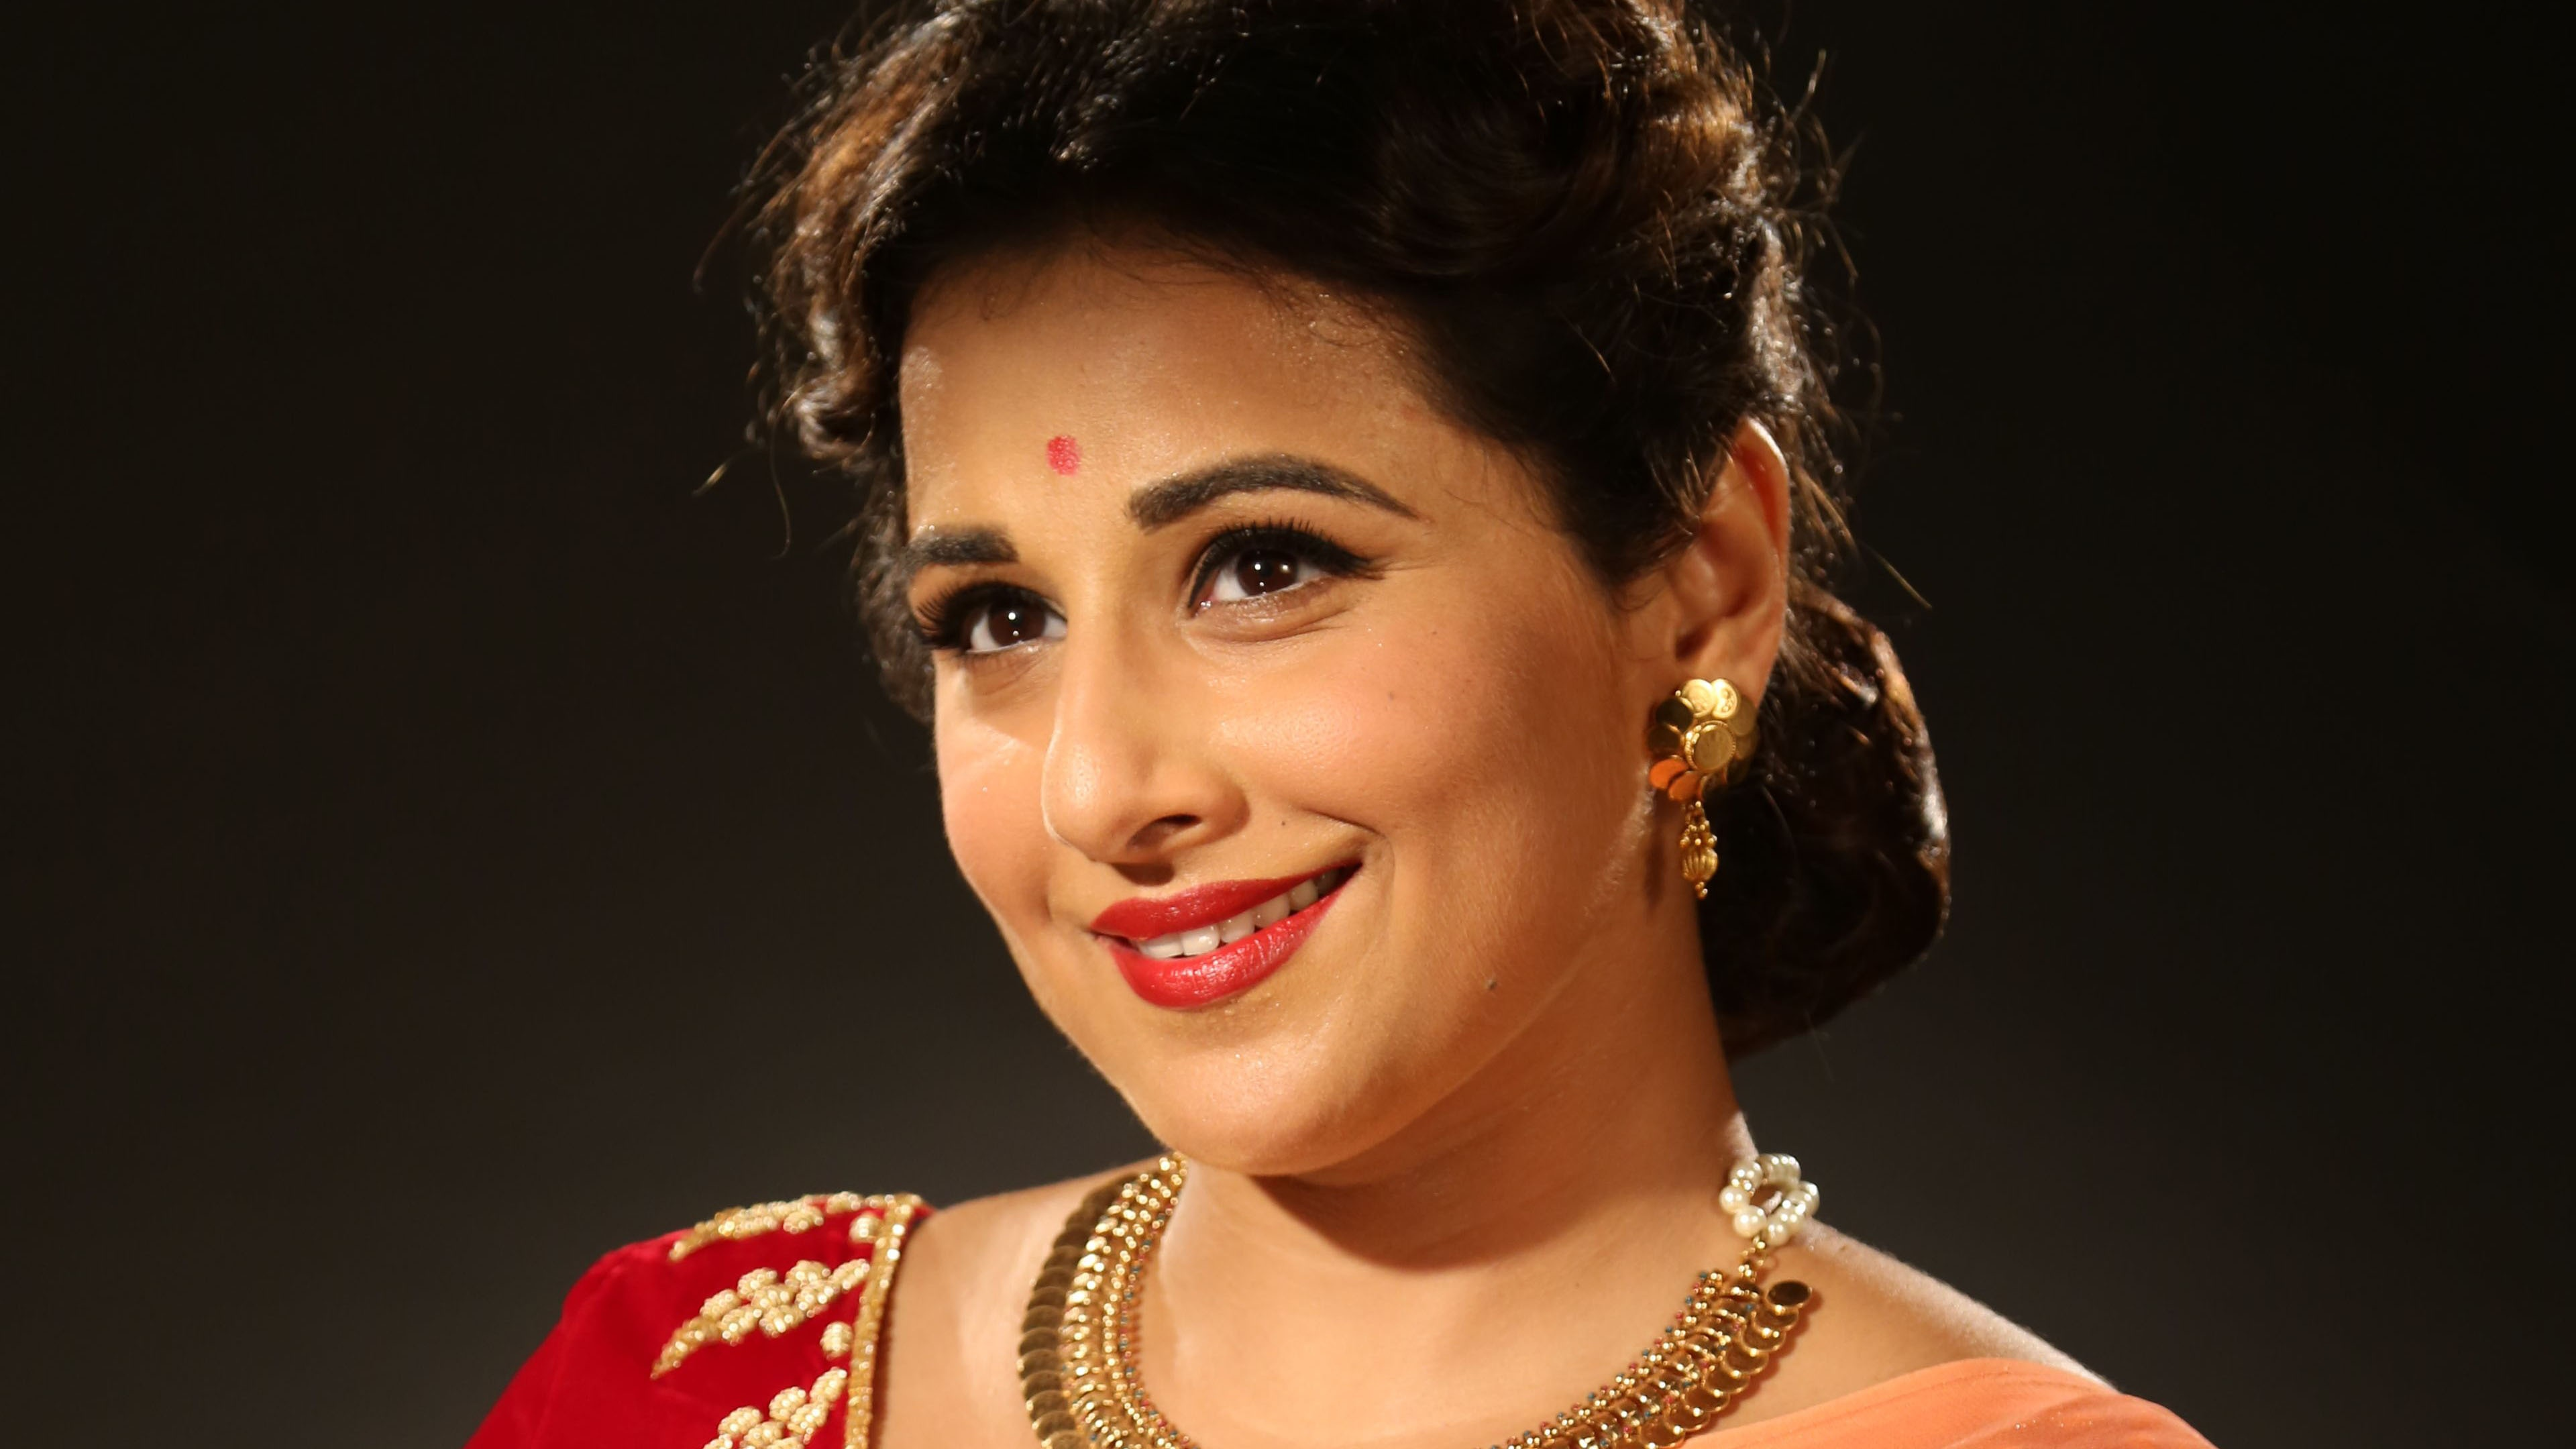 vidya balan wallpaper 4k background